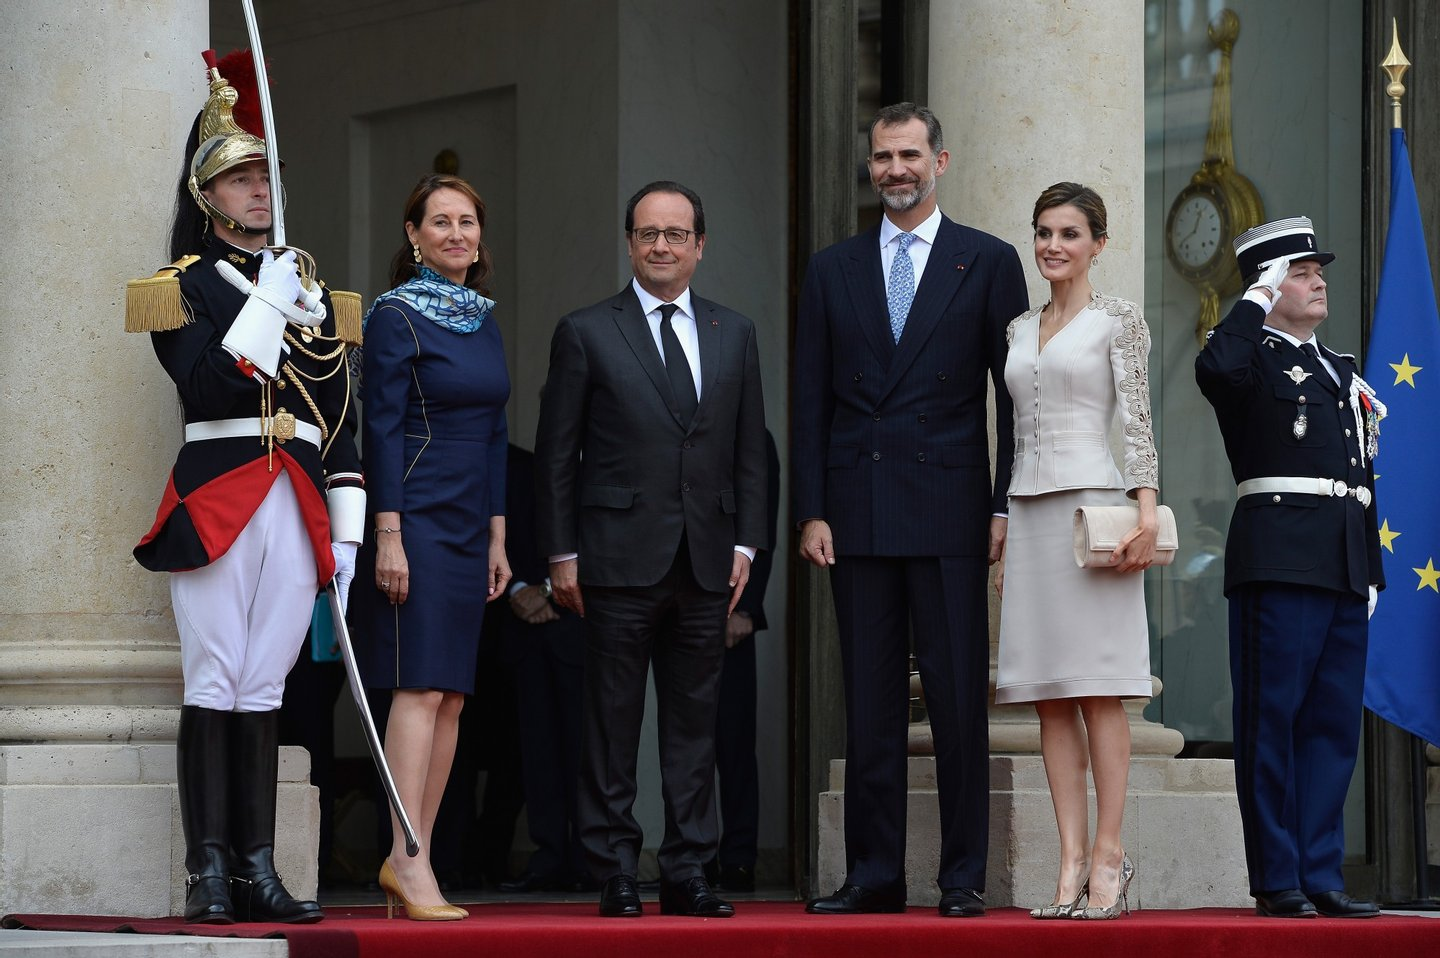 PARIS, FRANCE - JUNE 02: (L-R) French Minister of Ecology Segolene Royal and French President Francois Hollande pose with King Felipe VI of Spain and Queen Letizia of Spain in the courtyard of the Elysee Palace during day 1 of the Spanish Royal couple's state visit on June 2, 2015 in Paris, France. Spain's King Felipe VI and Queen Letizia are on a three-day state visit, which had to be postponed last march following the Germanwings plane crash. (Photo by Pascal Le Segretain/Getty Images)